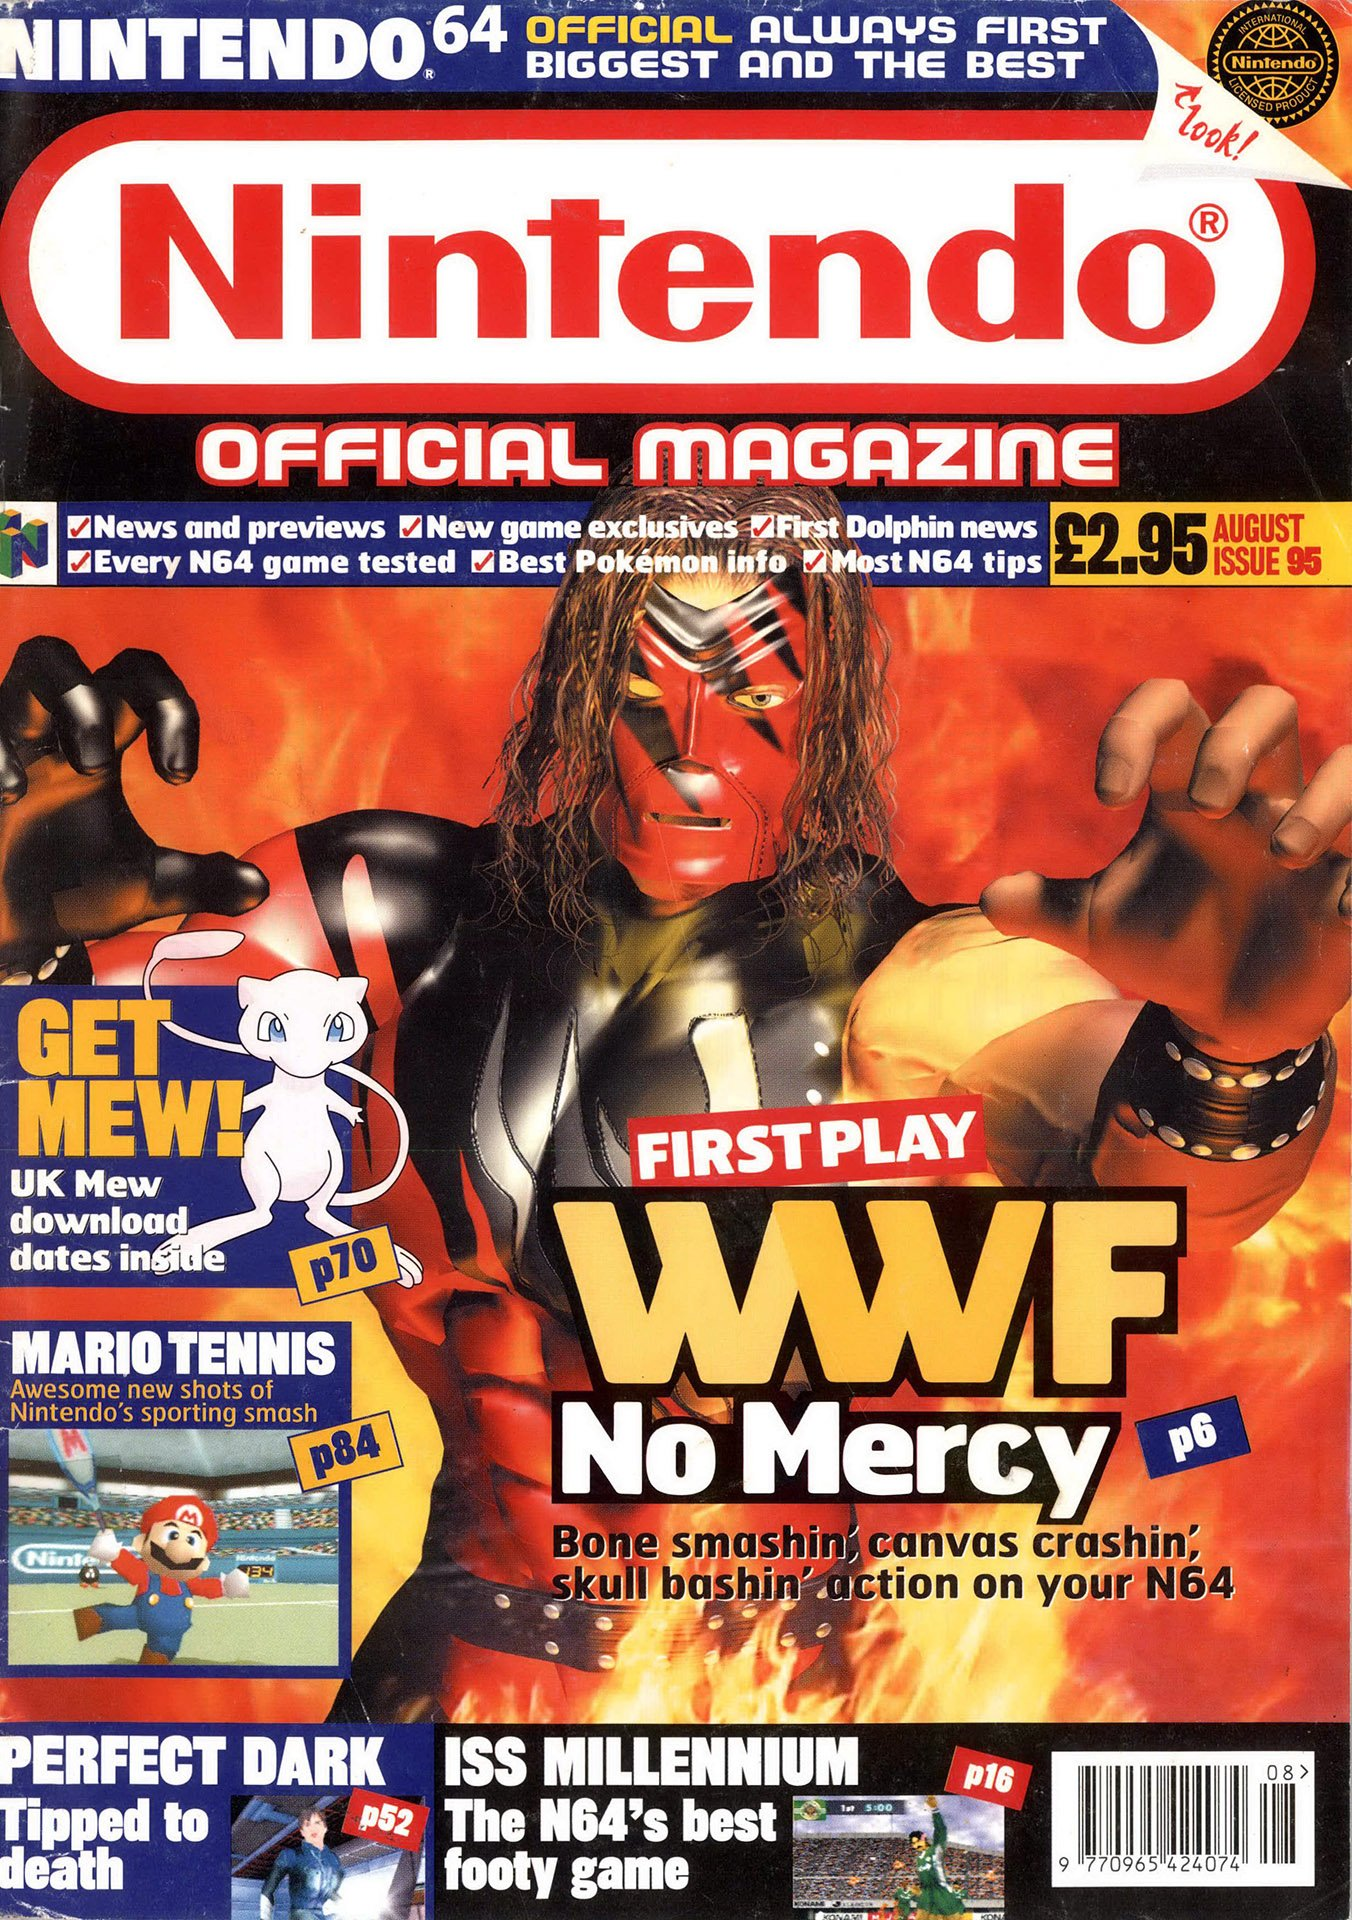 Nintendo Official Magazine 095 (August 2000)